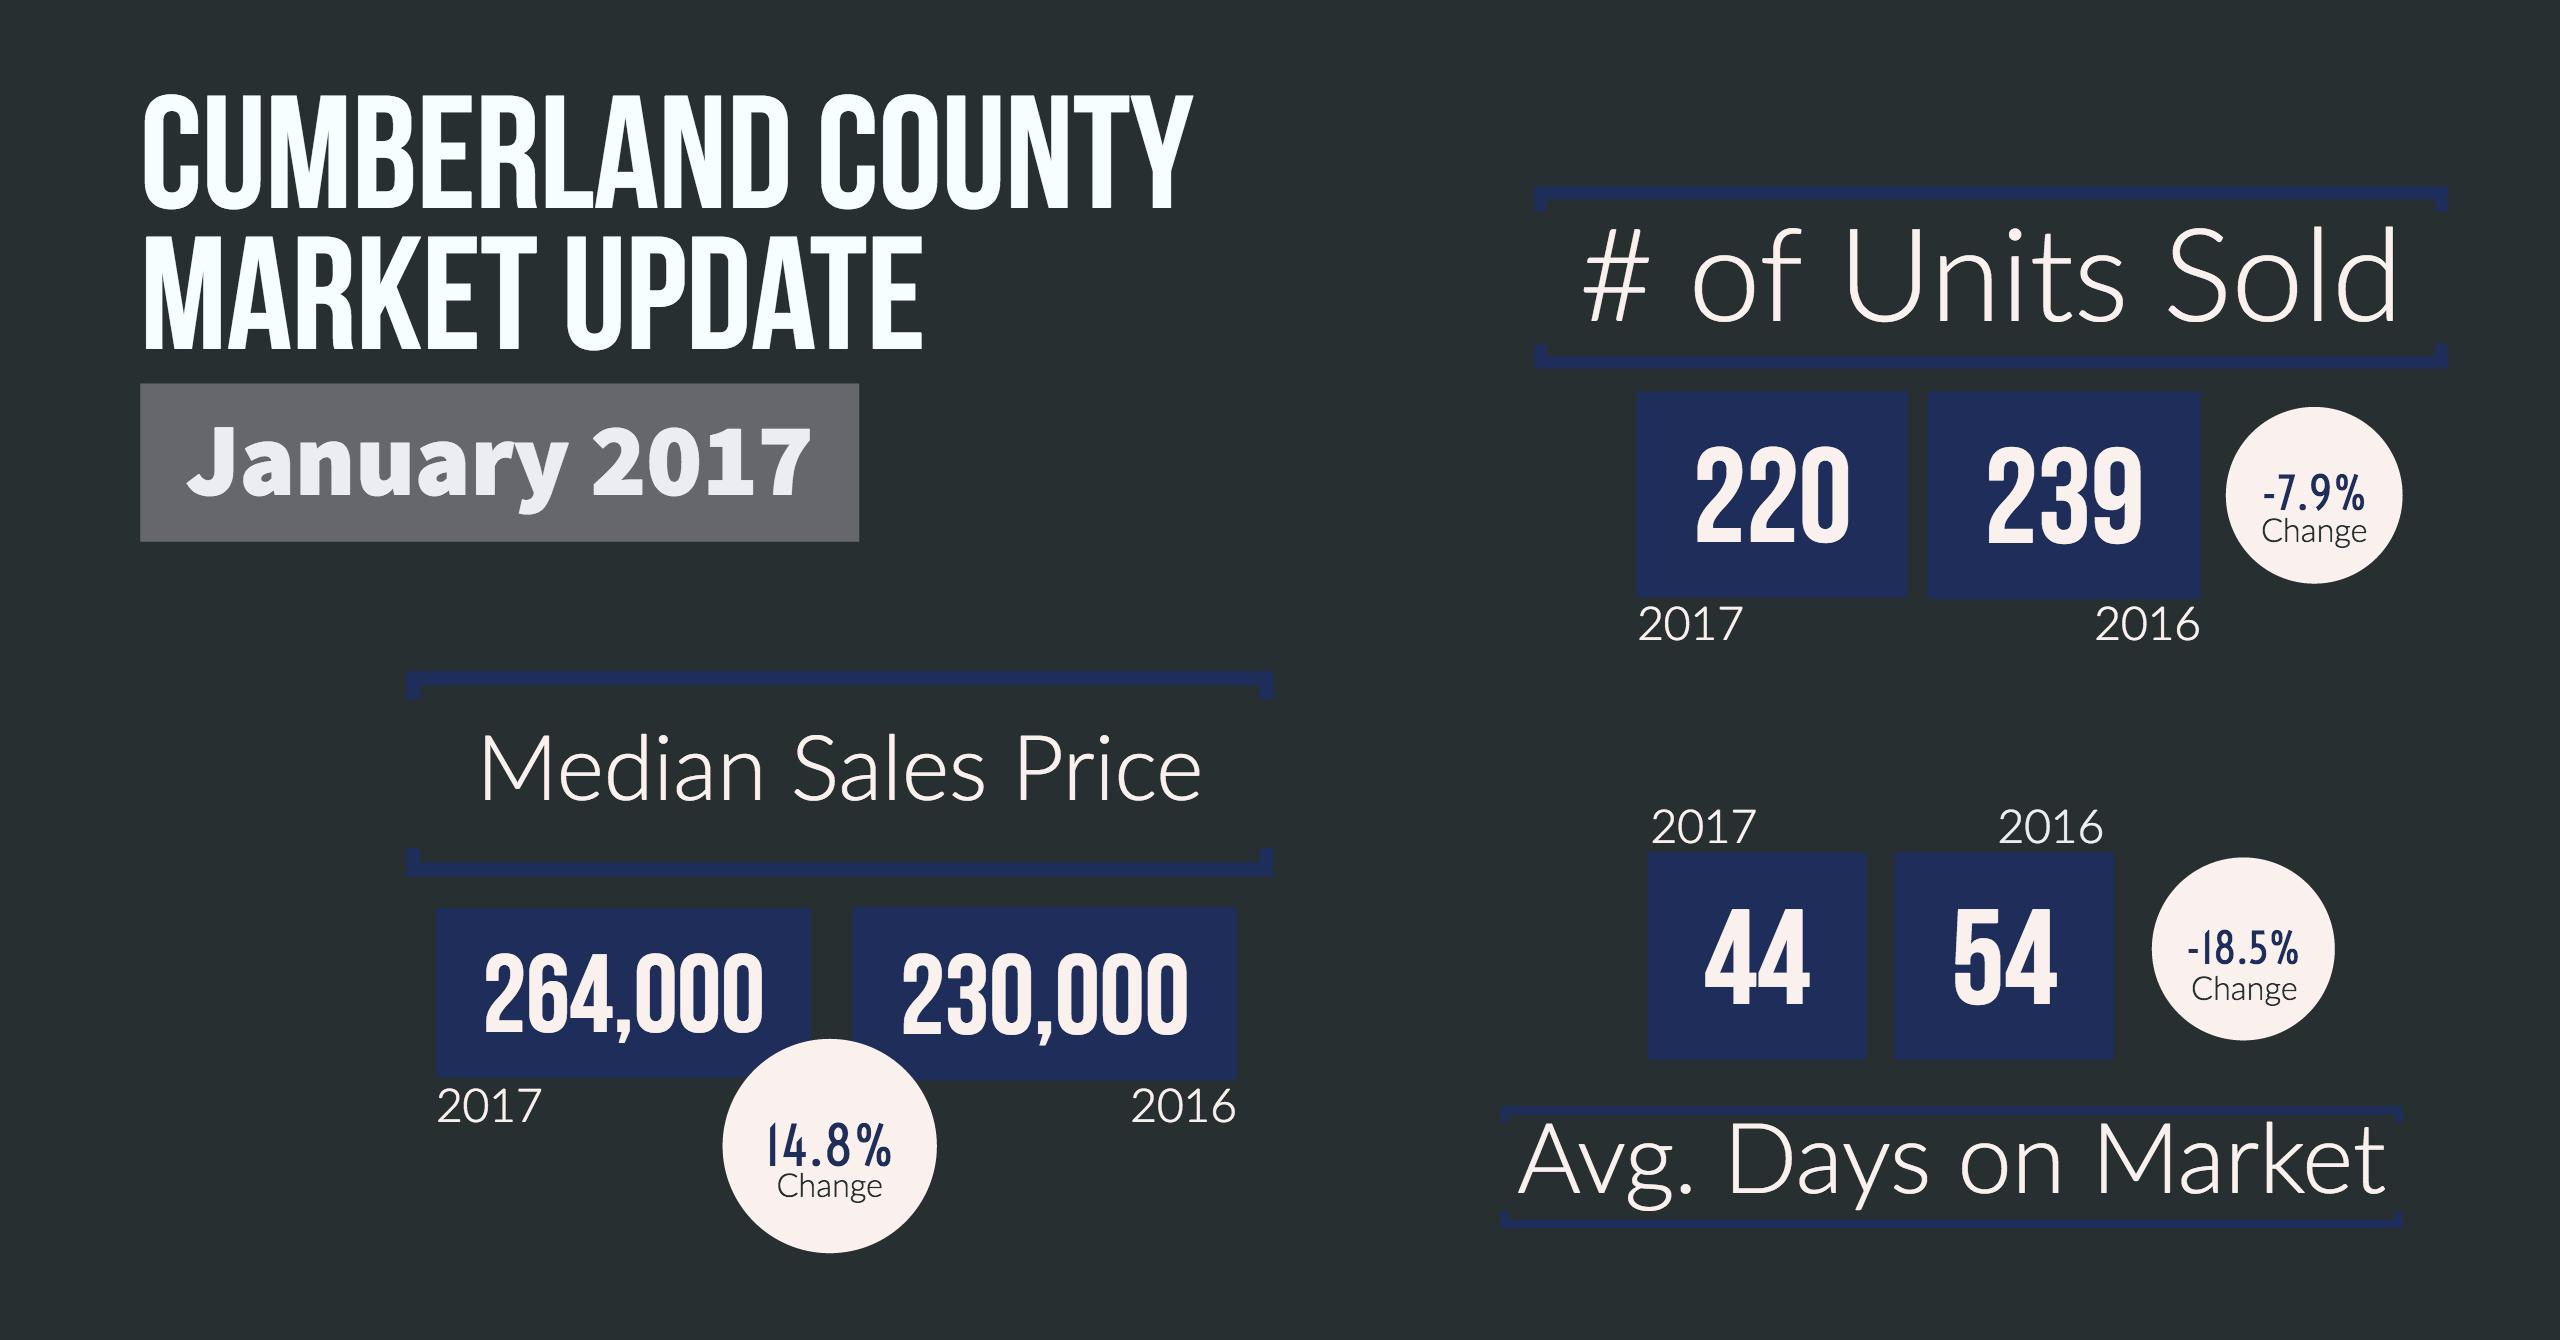 Cumberland County Real Estate Market Update - January 2017